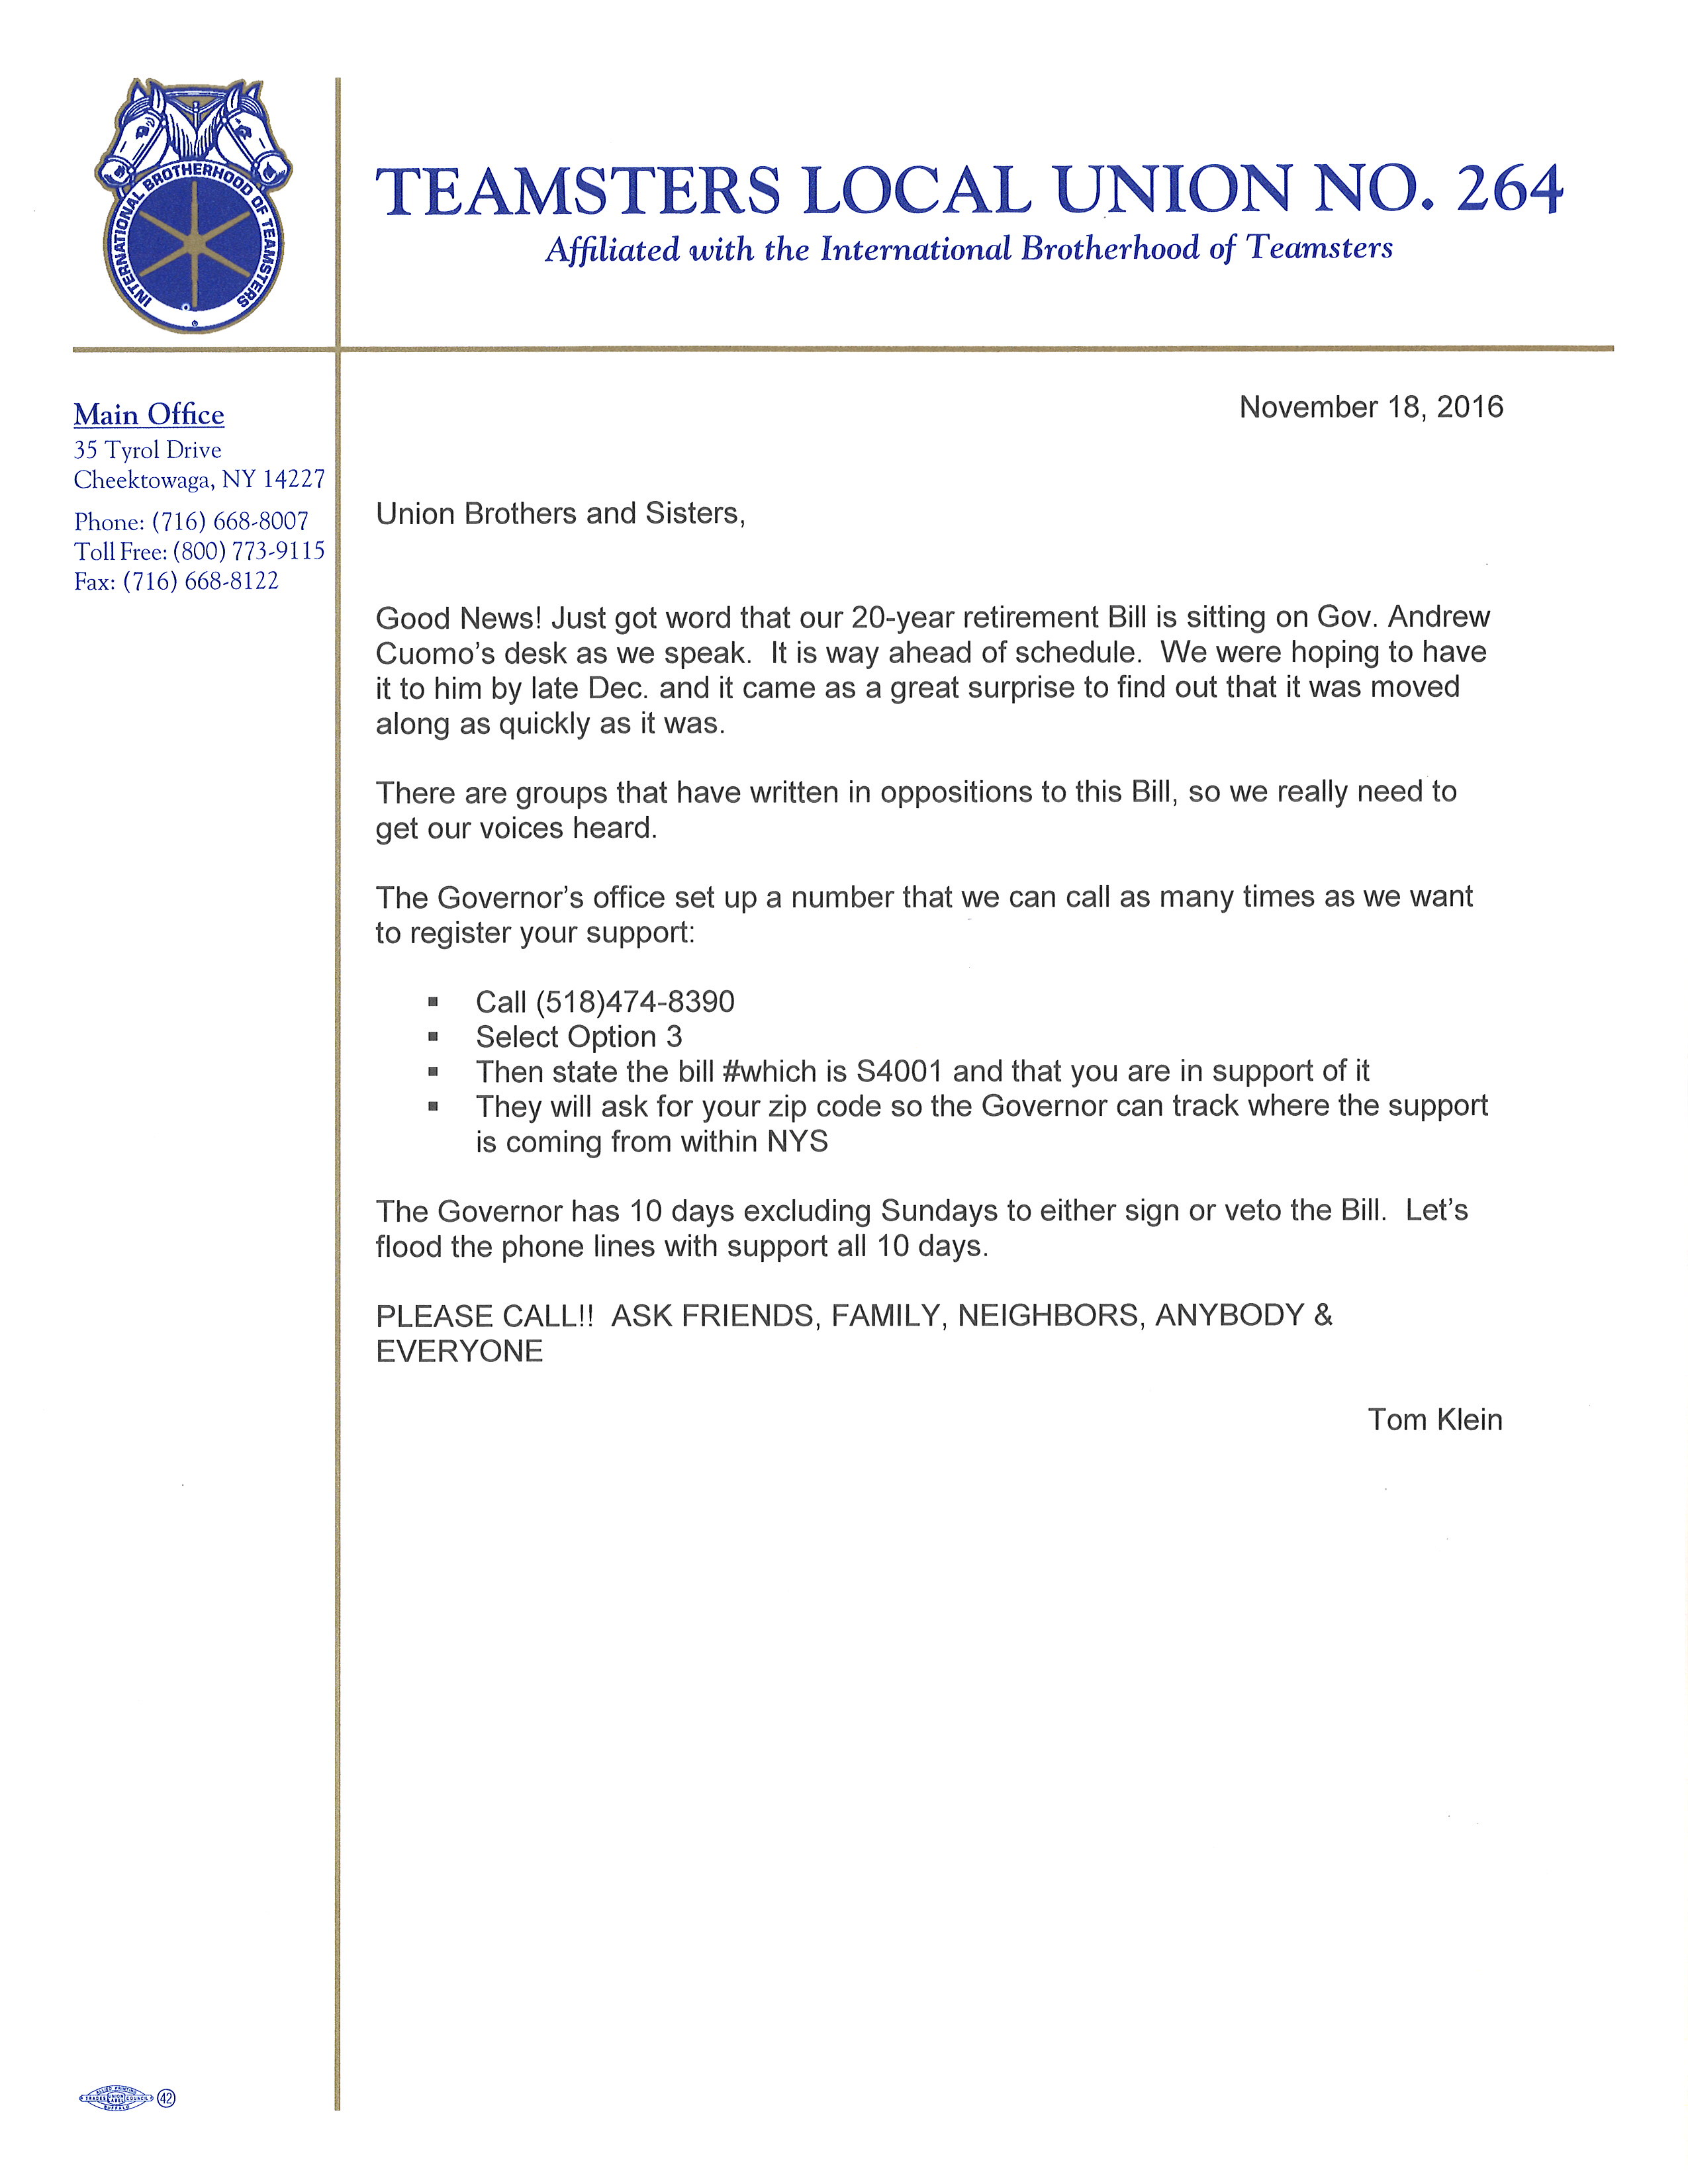 follow up resume email sample